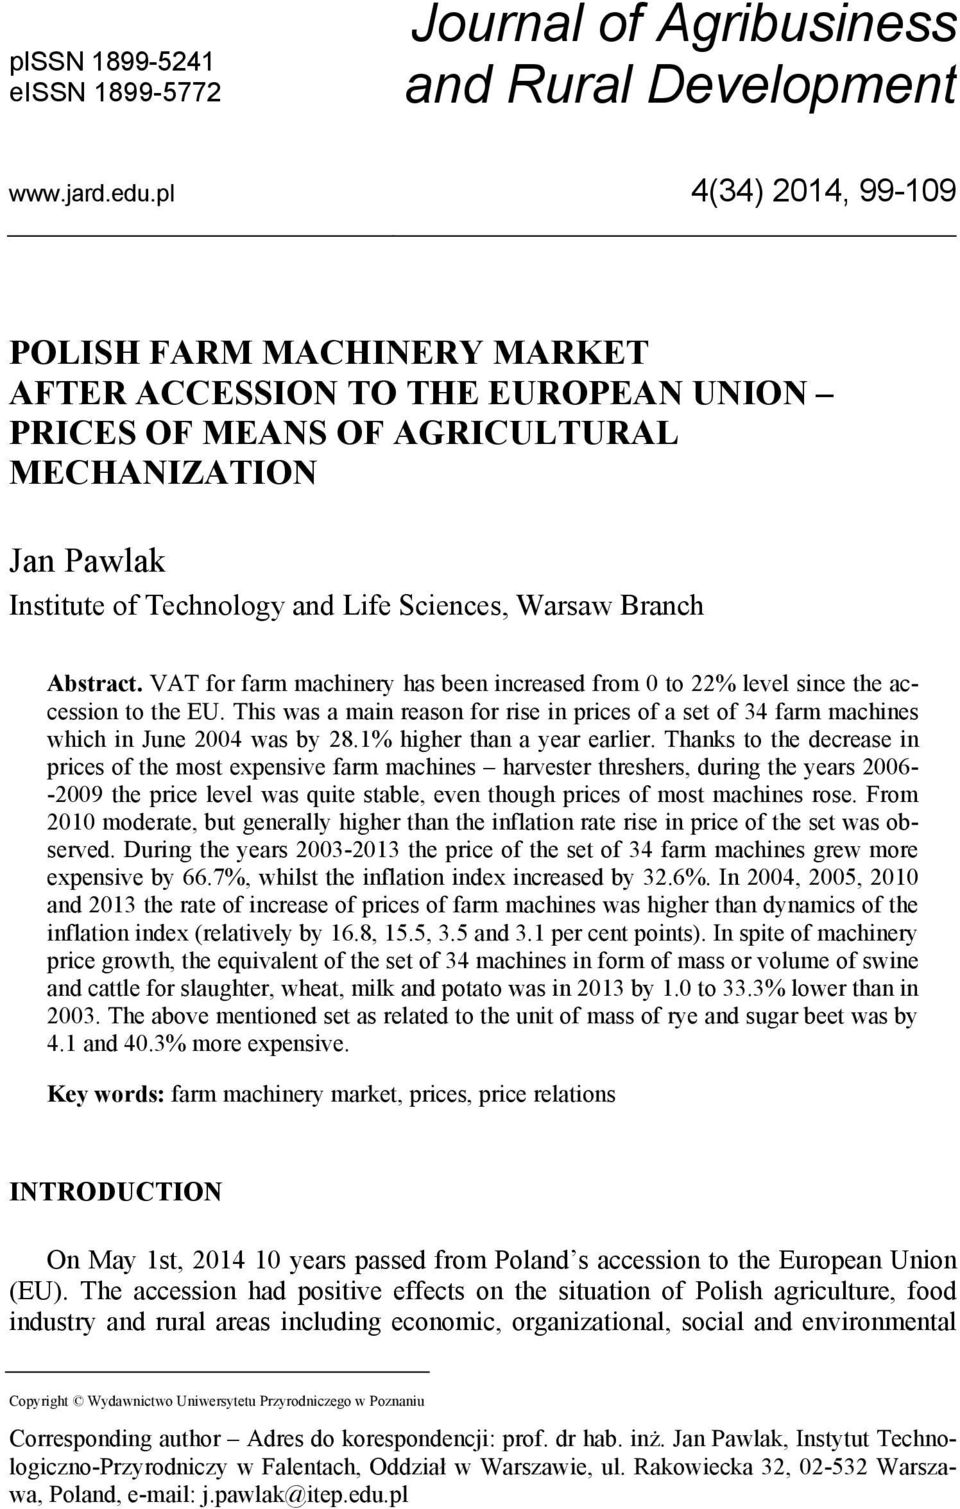 Branch Abstract. VAT for farm machinery has been increased from 0 to 22% level since the accession to the EU.